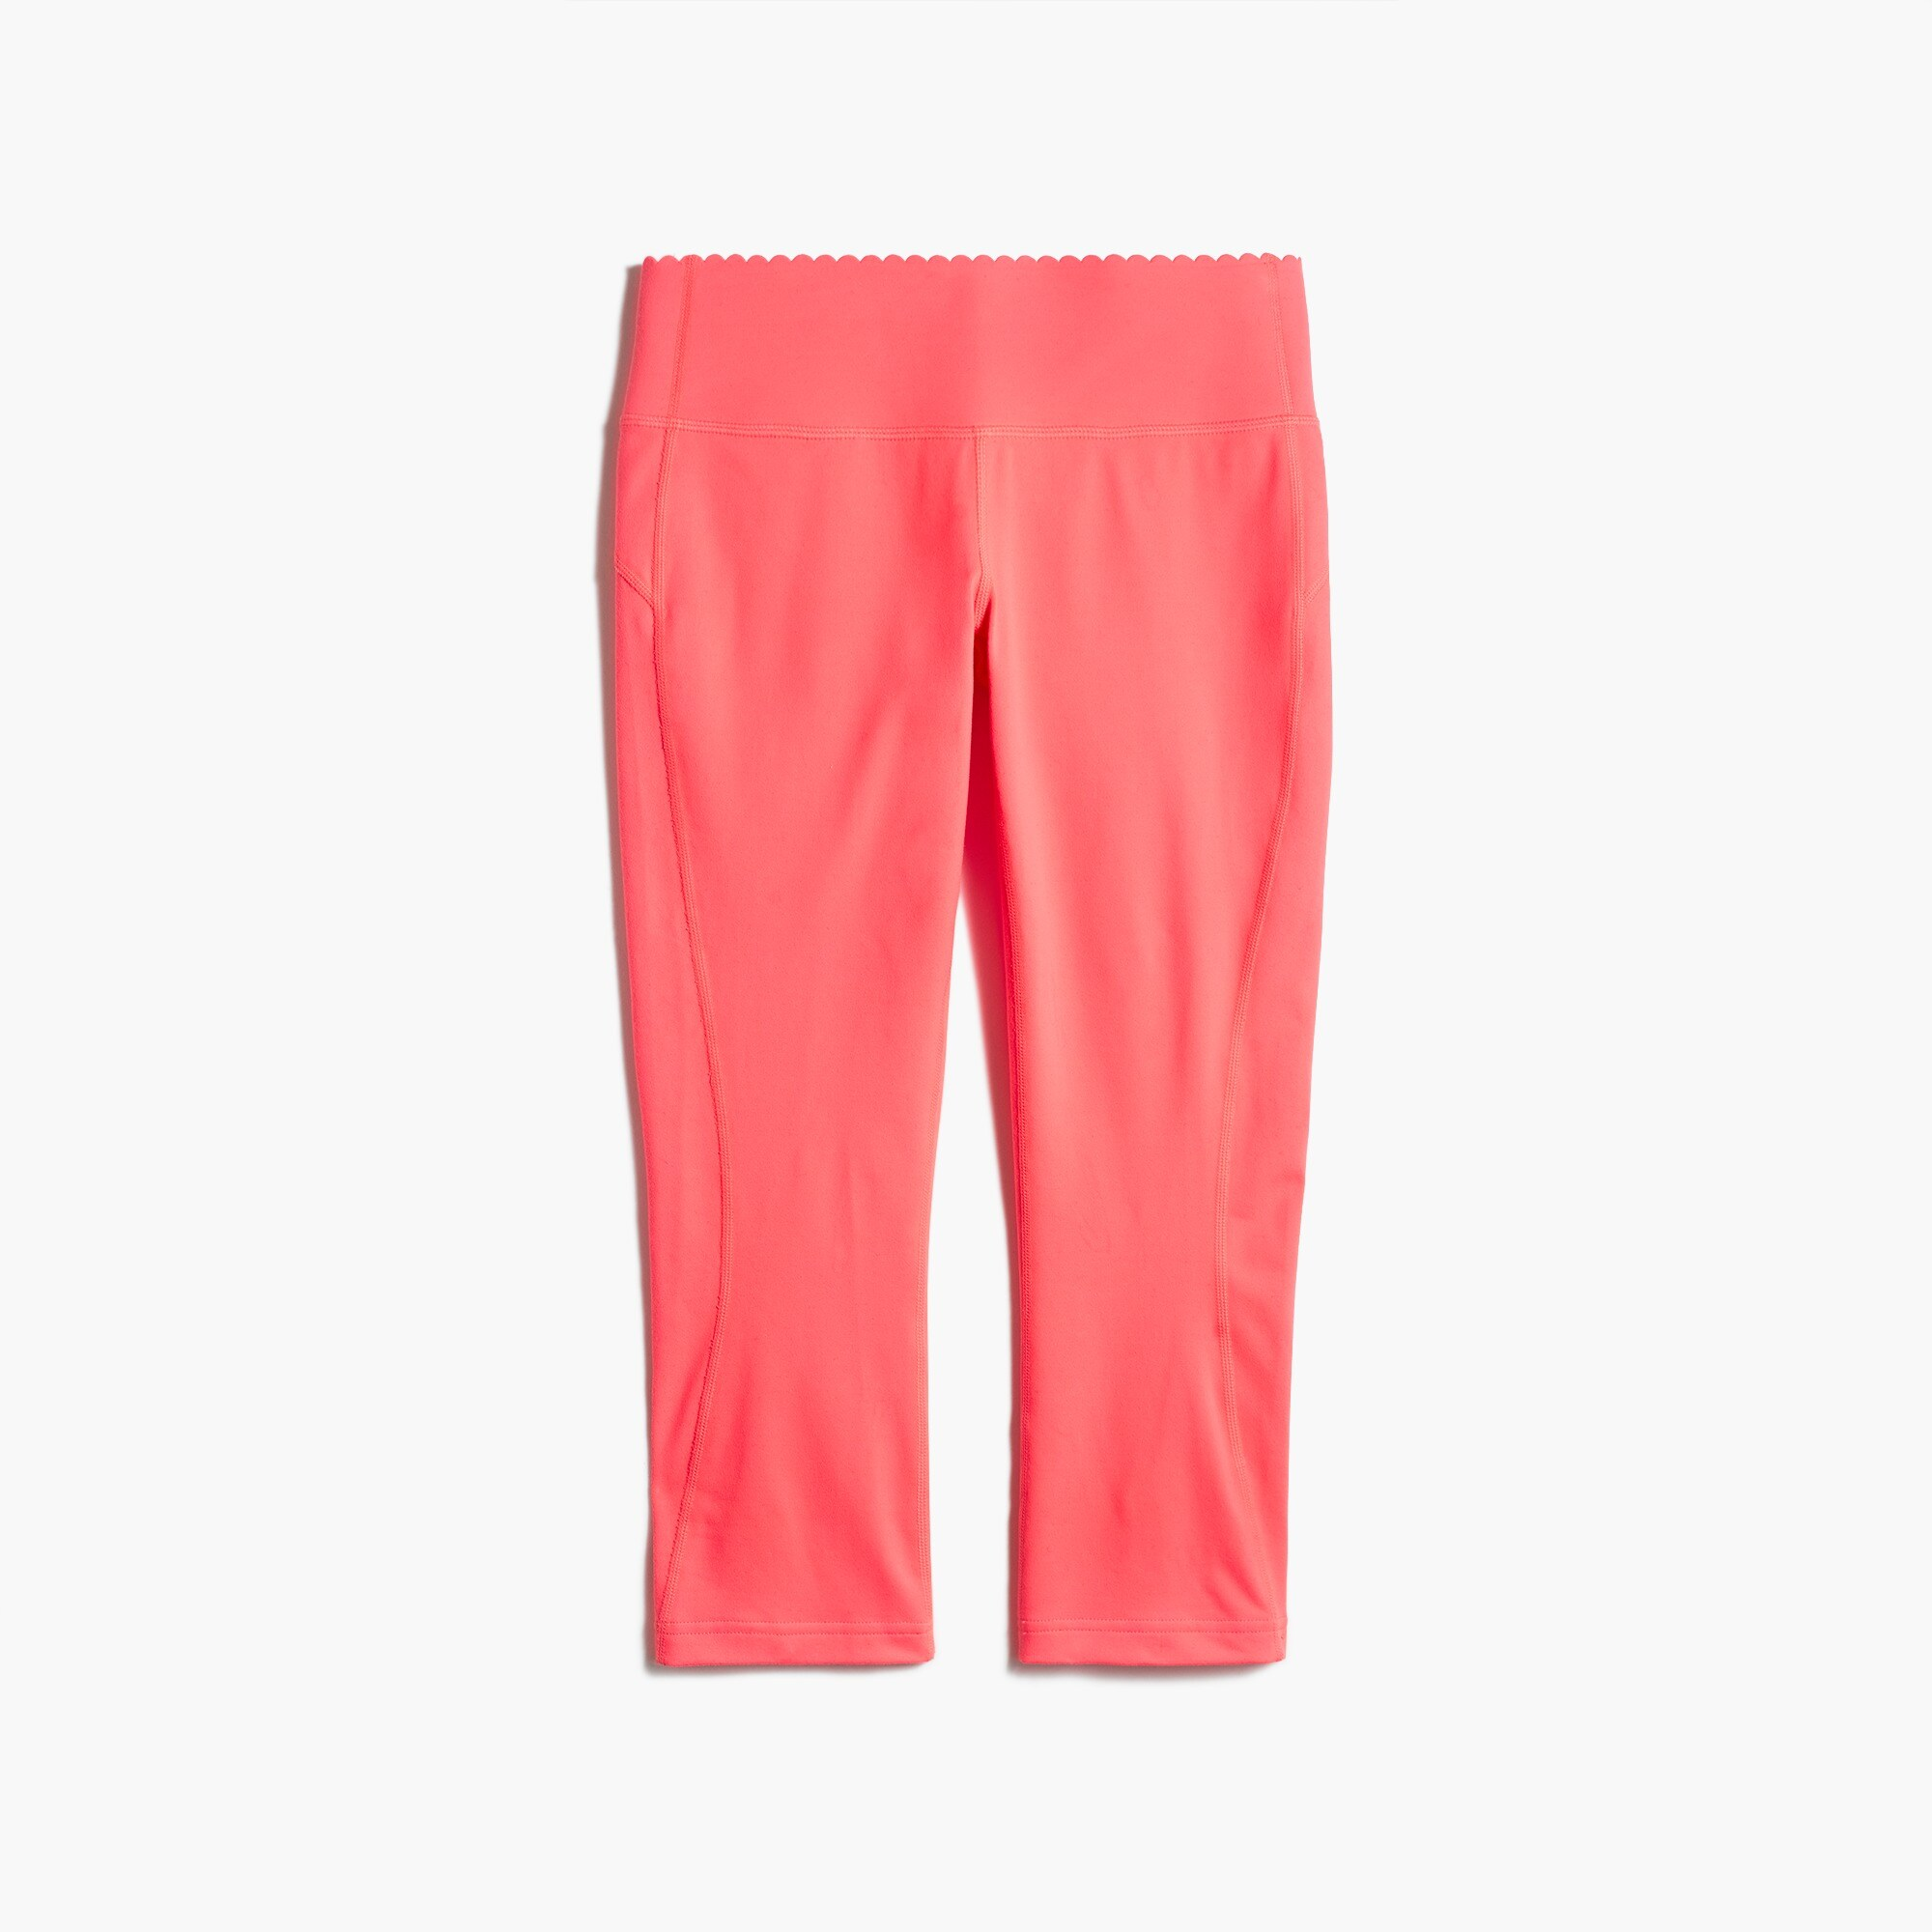 New Balance® for J.Crew scalloped performance capri leggings